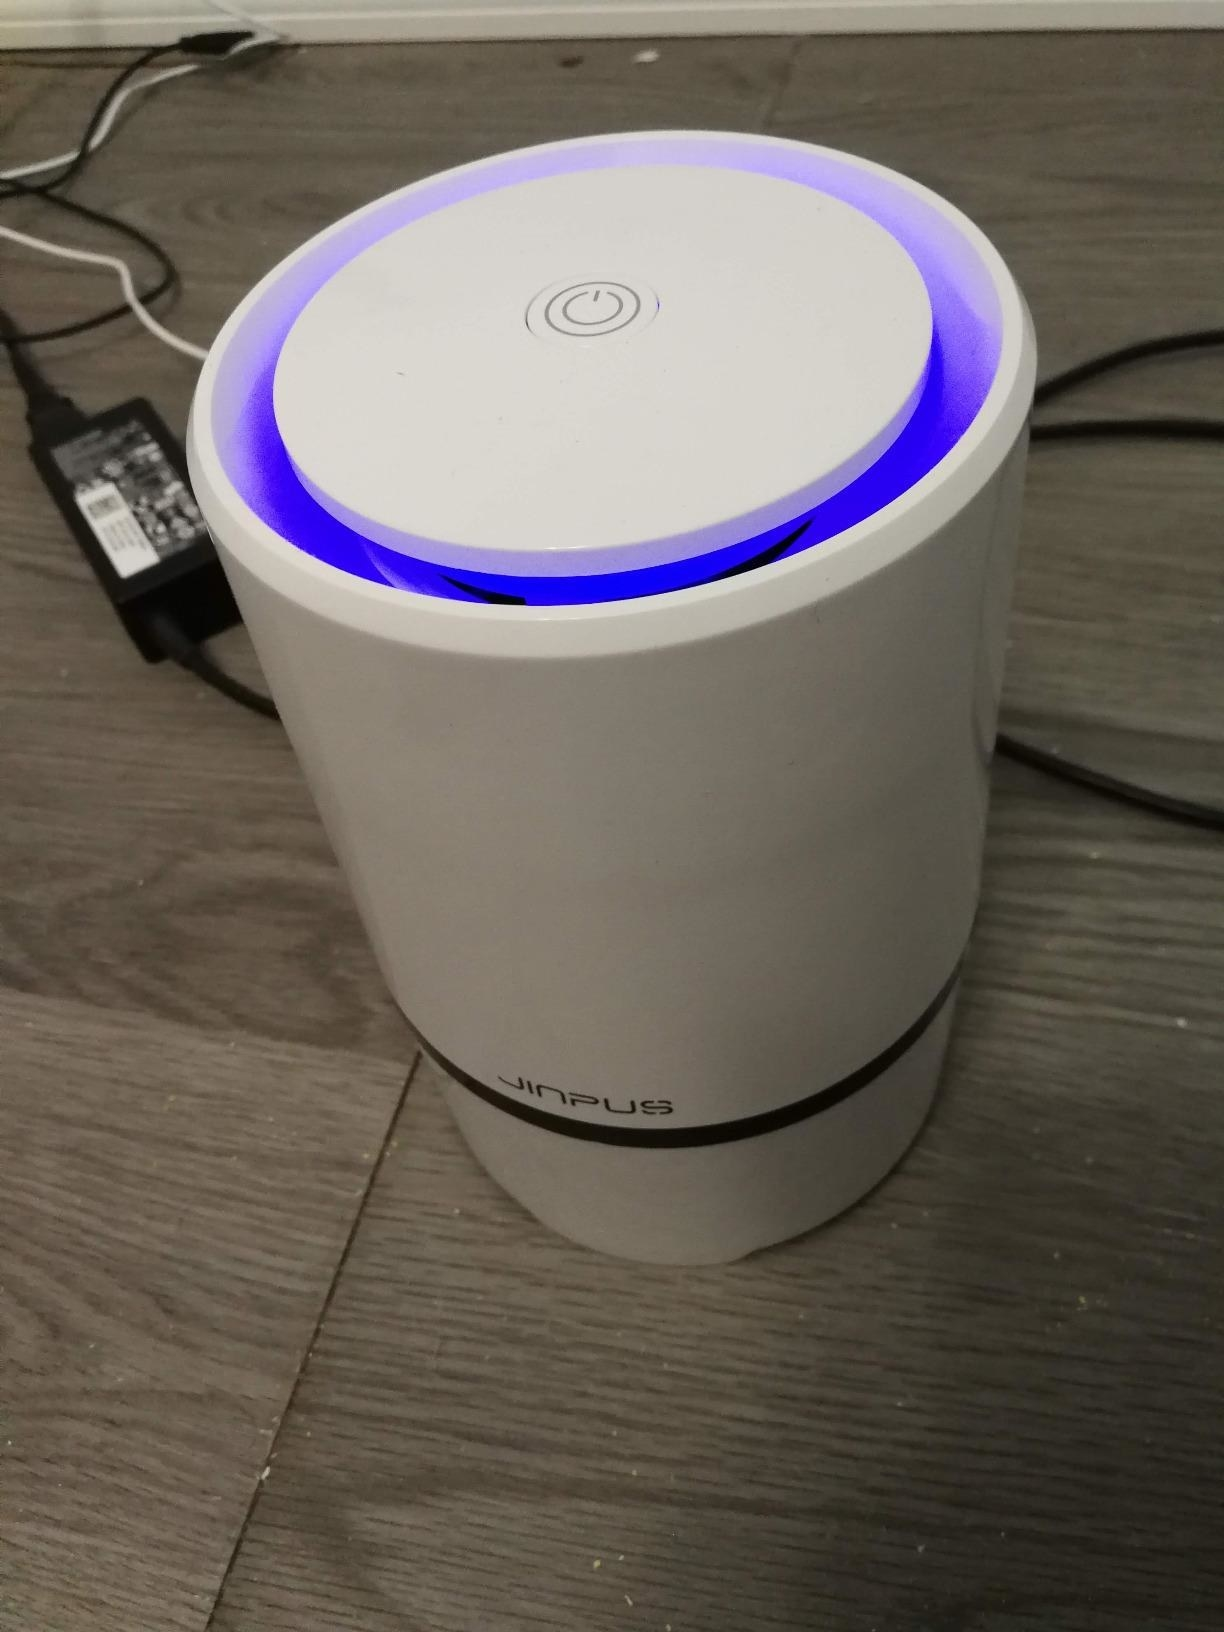 A reviewer image of the JINPUS Air Purifier